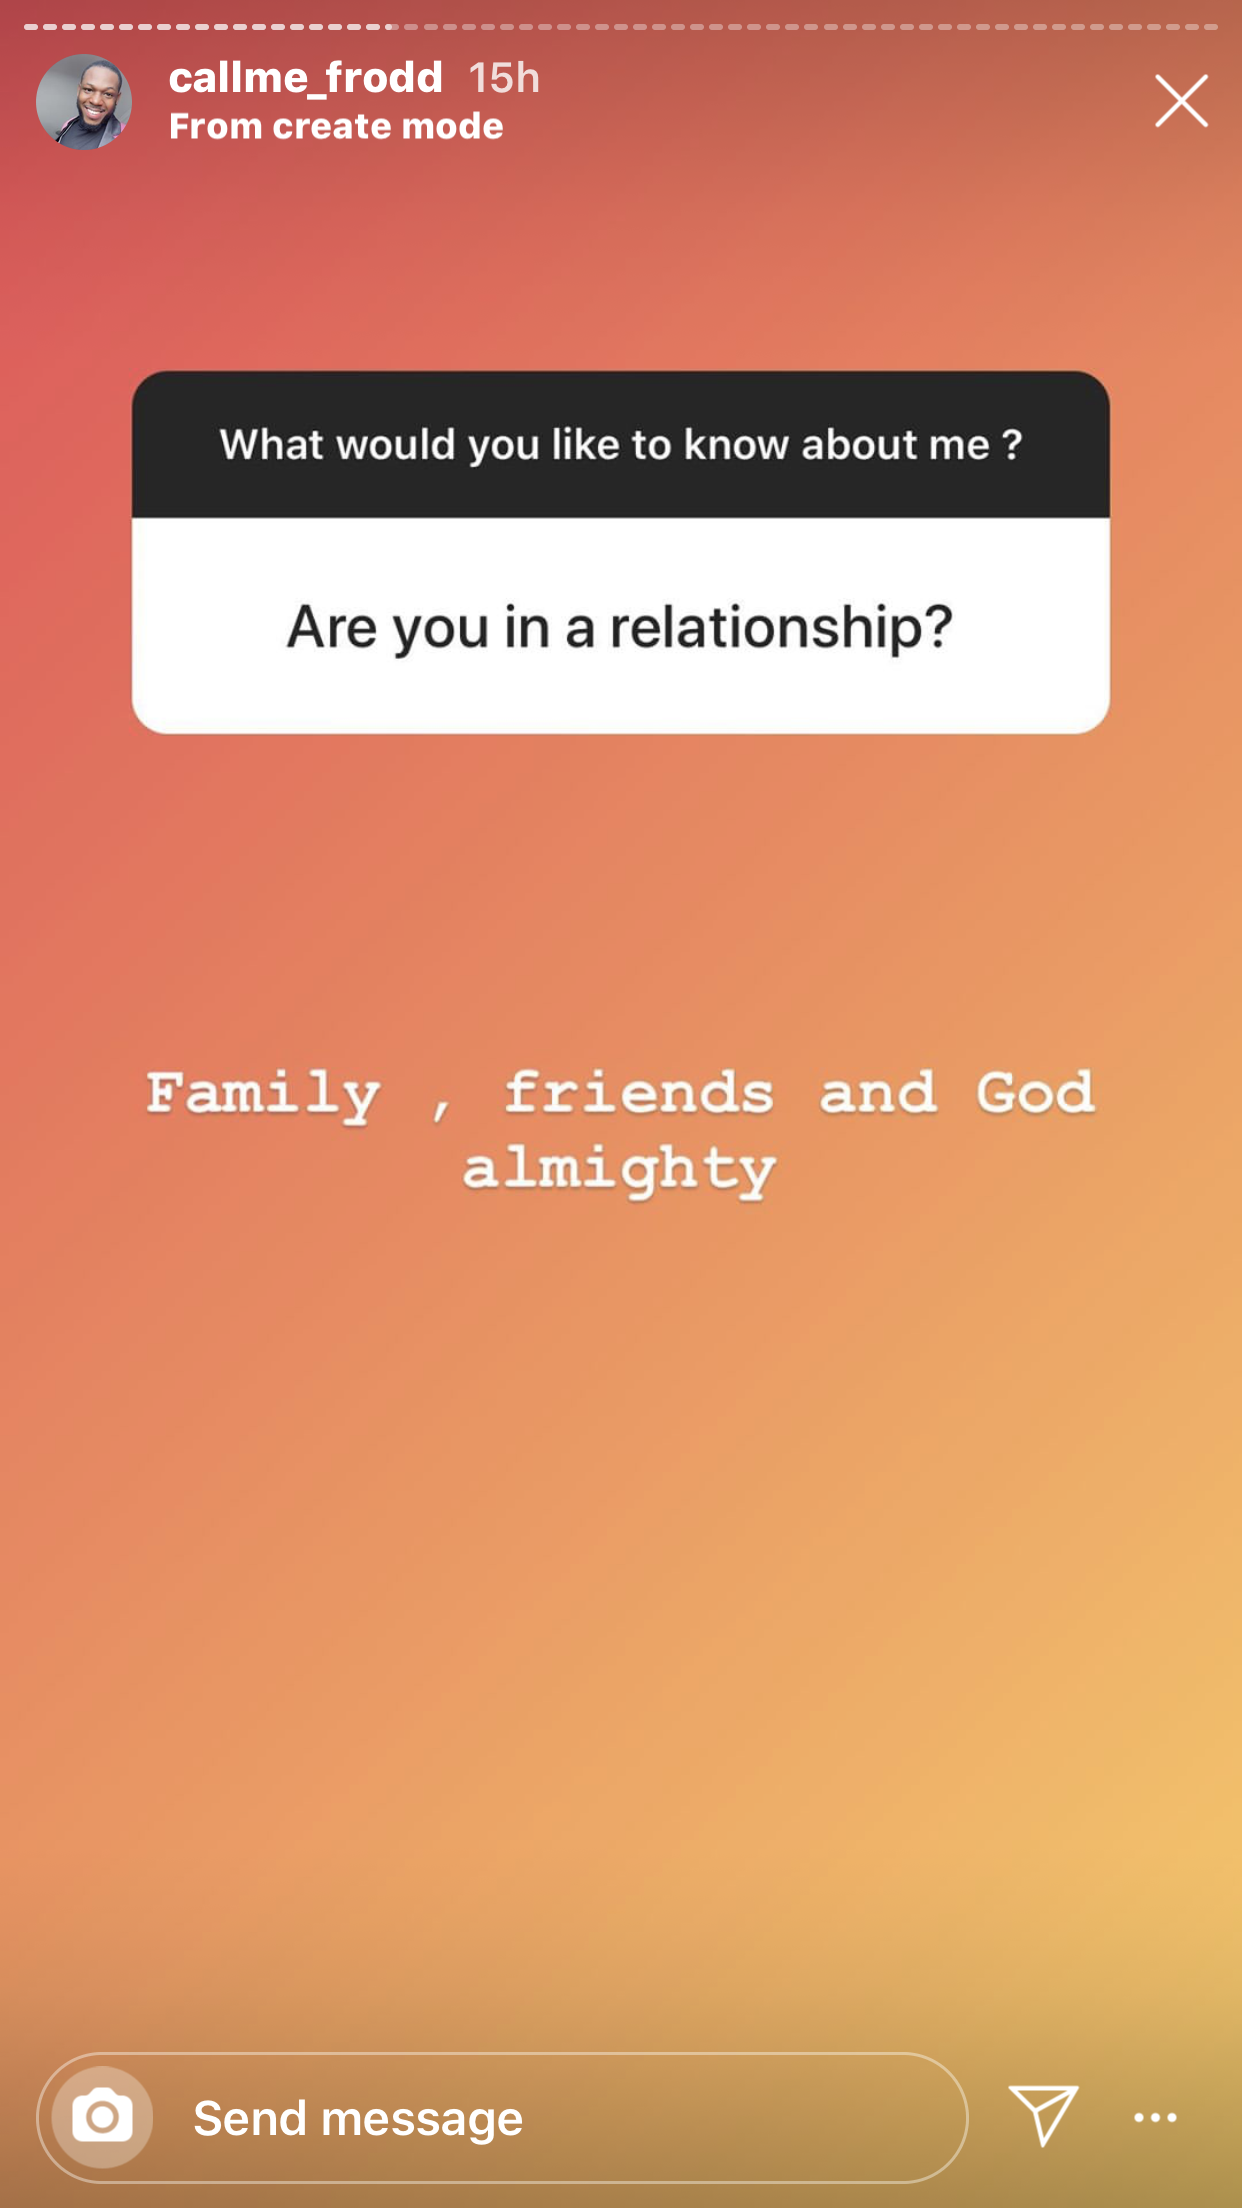 Screenshot of the QnA session on IG